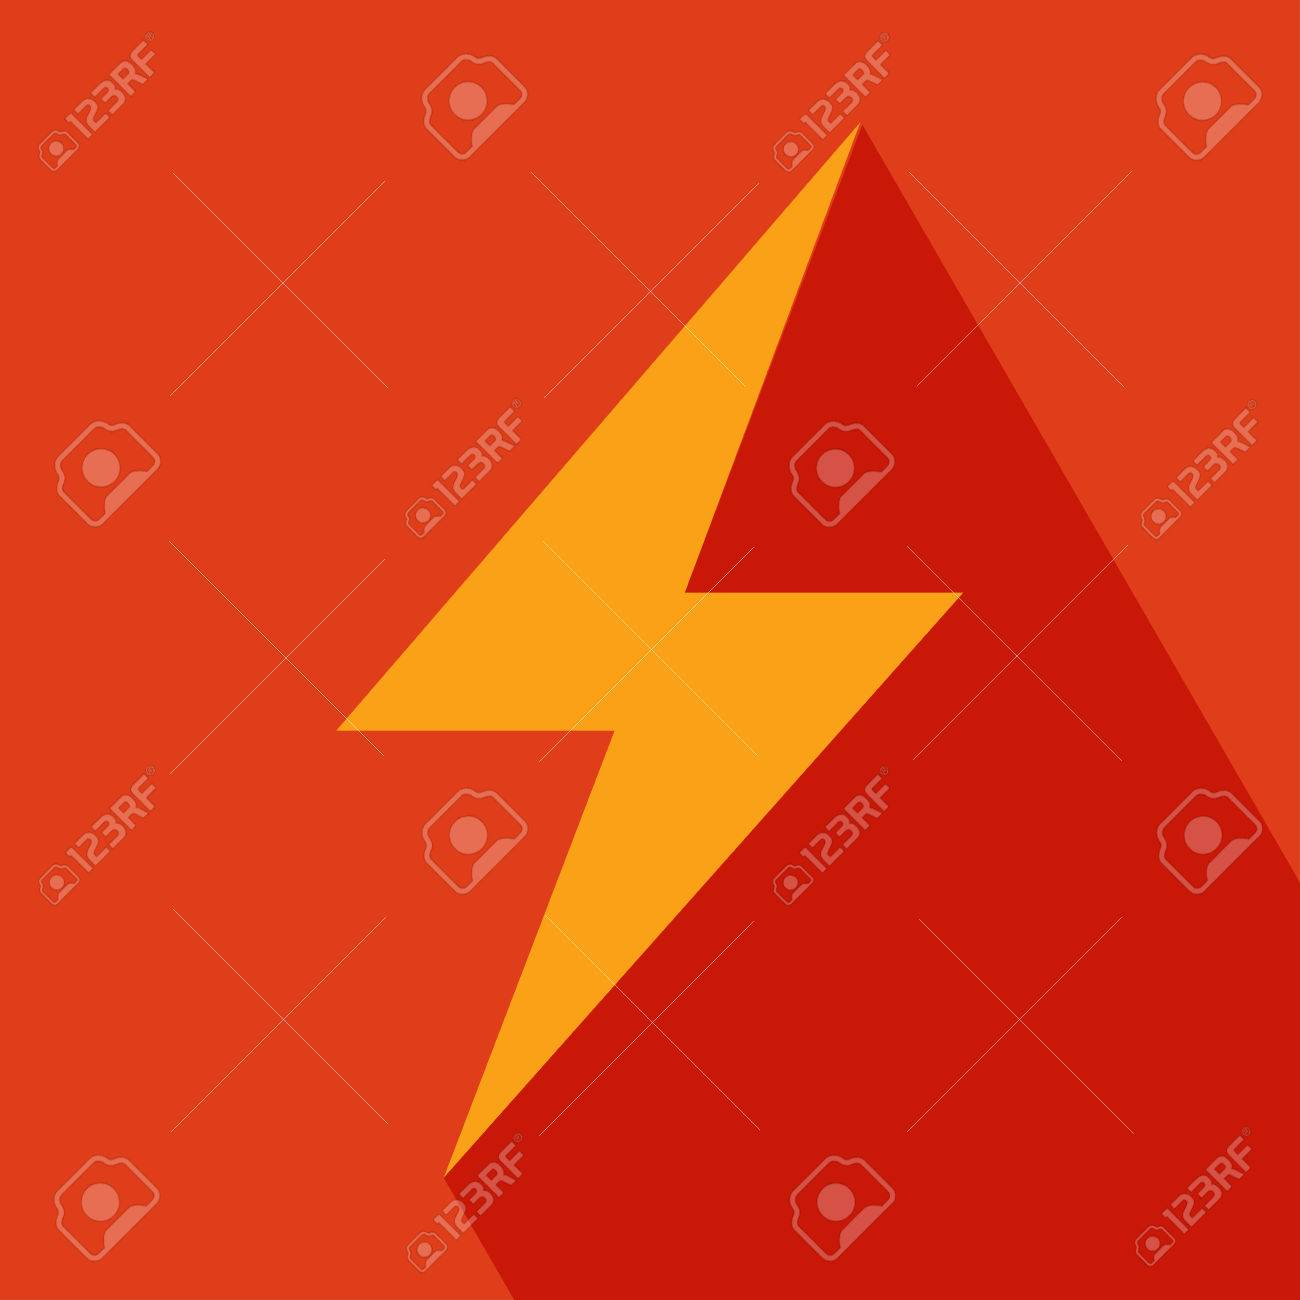 Thunder Icon Lightning single flat icon Thunder Icon vector isolated on orange background EPS 10 vector illustration for design All in a single layer Vector illustration - 28170841